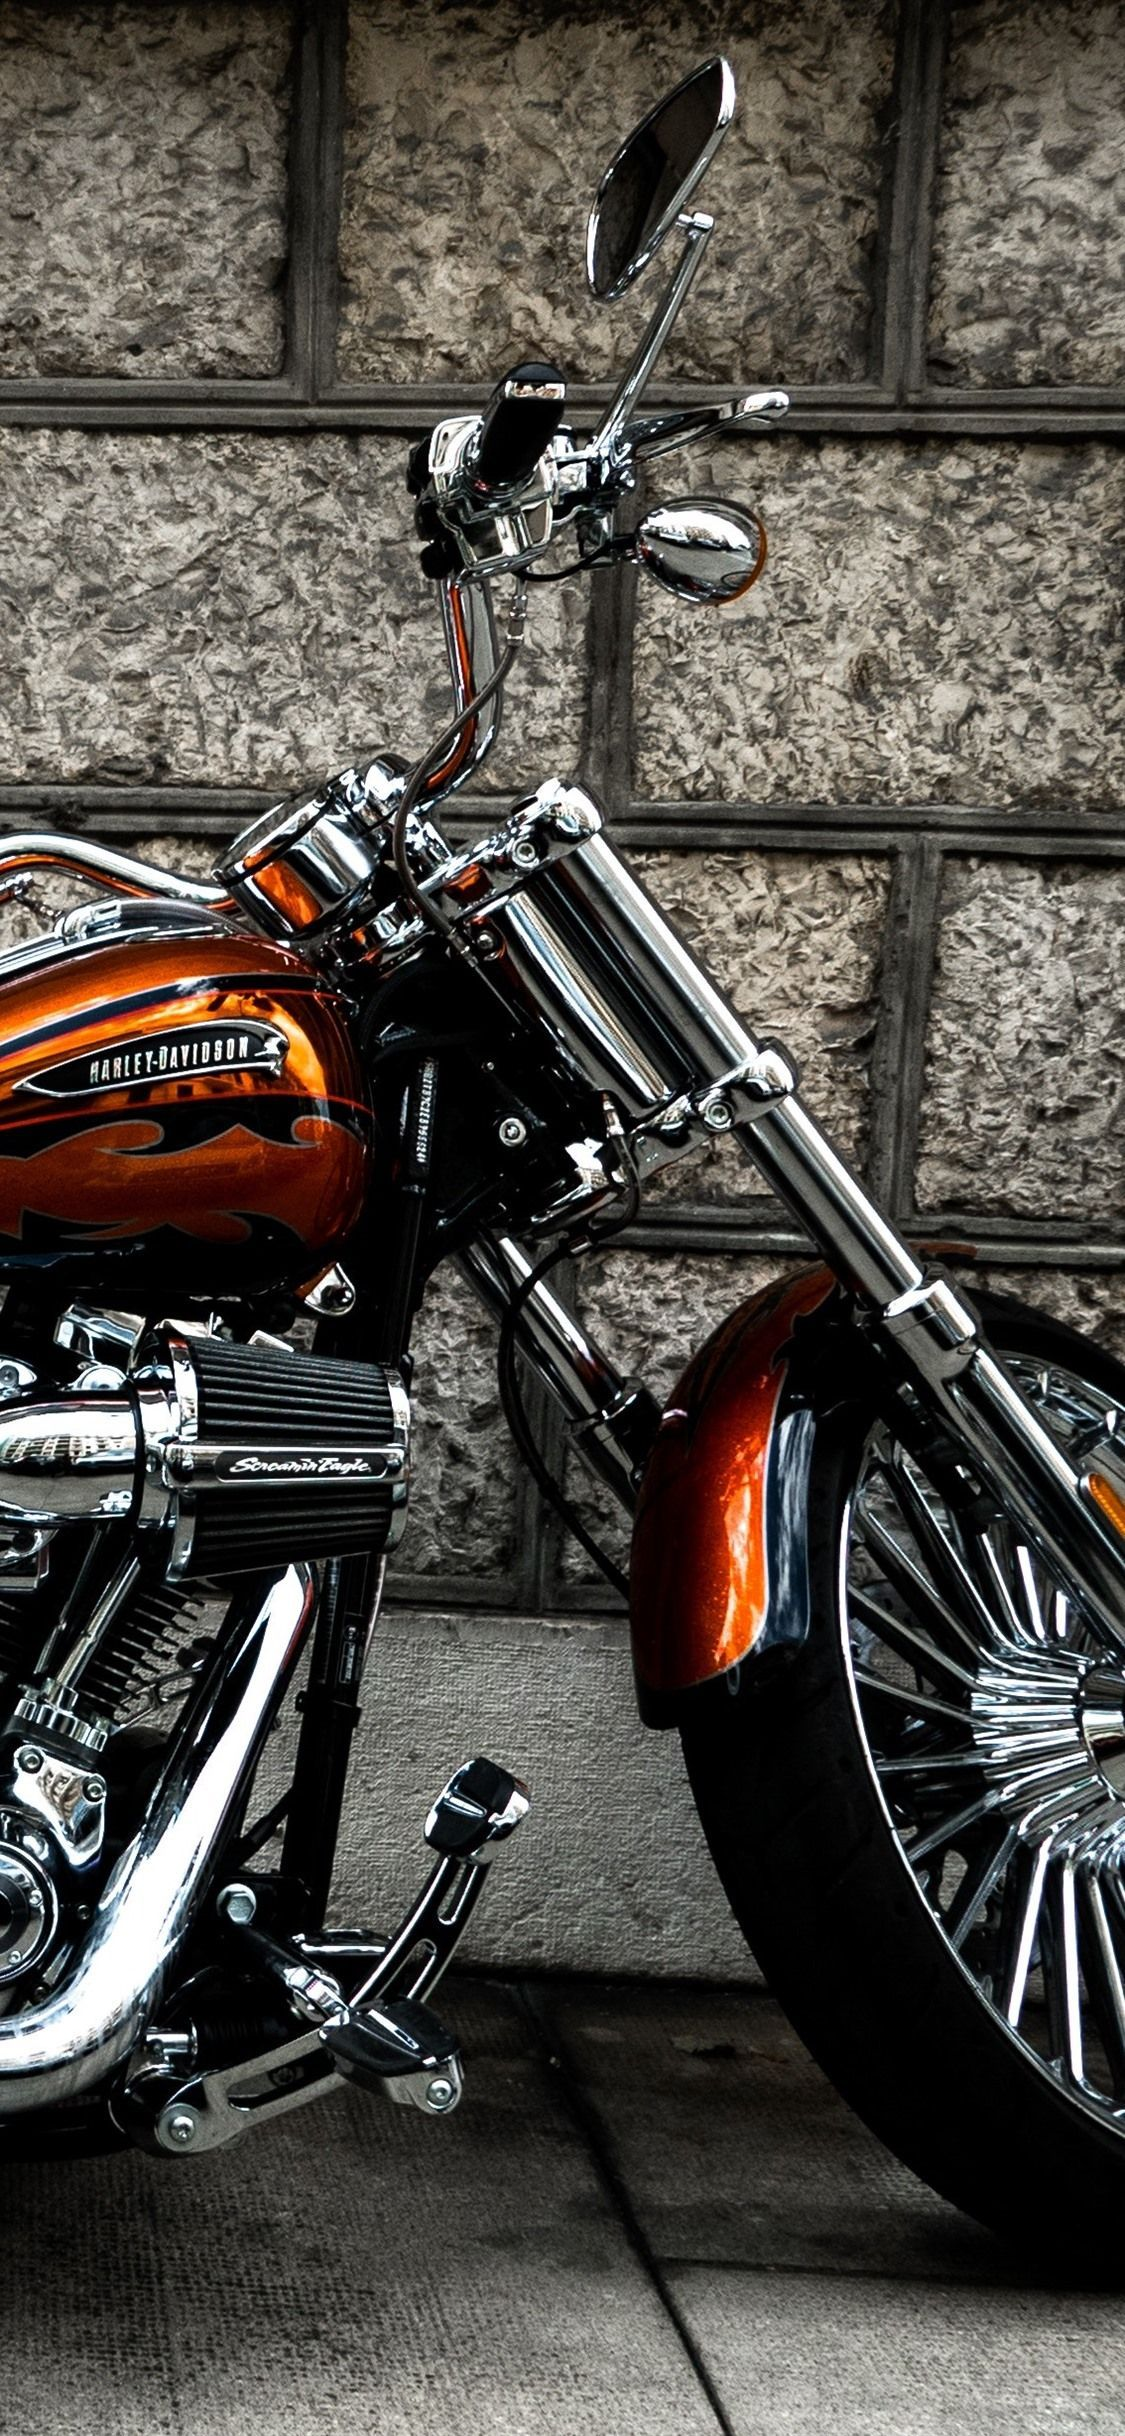 Wallpaper Harley Davidson Motorcycle Side View 3840x2160